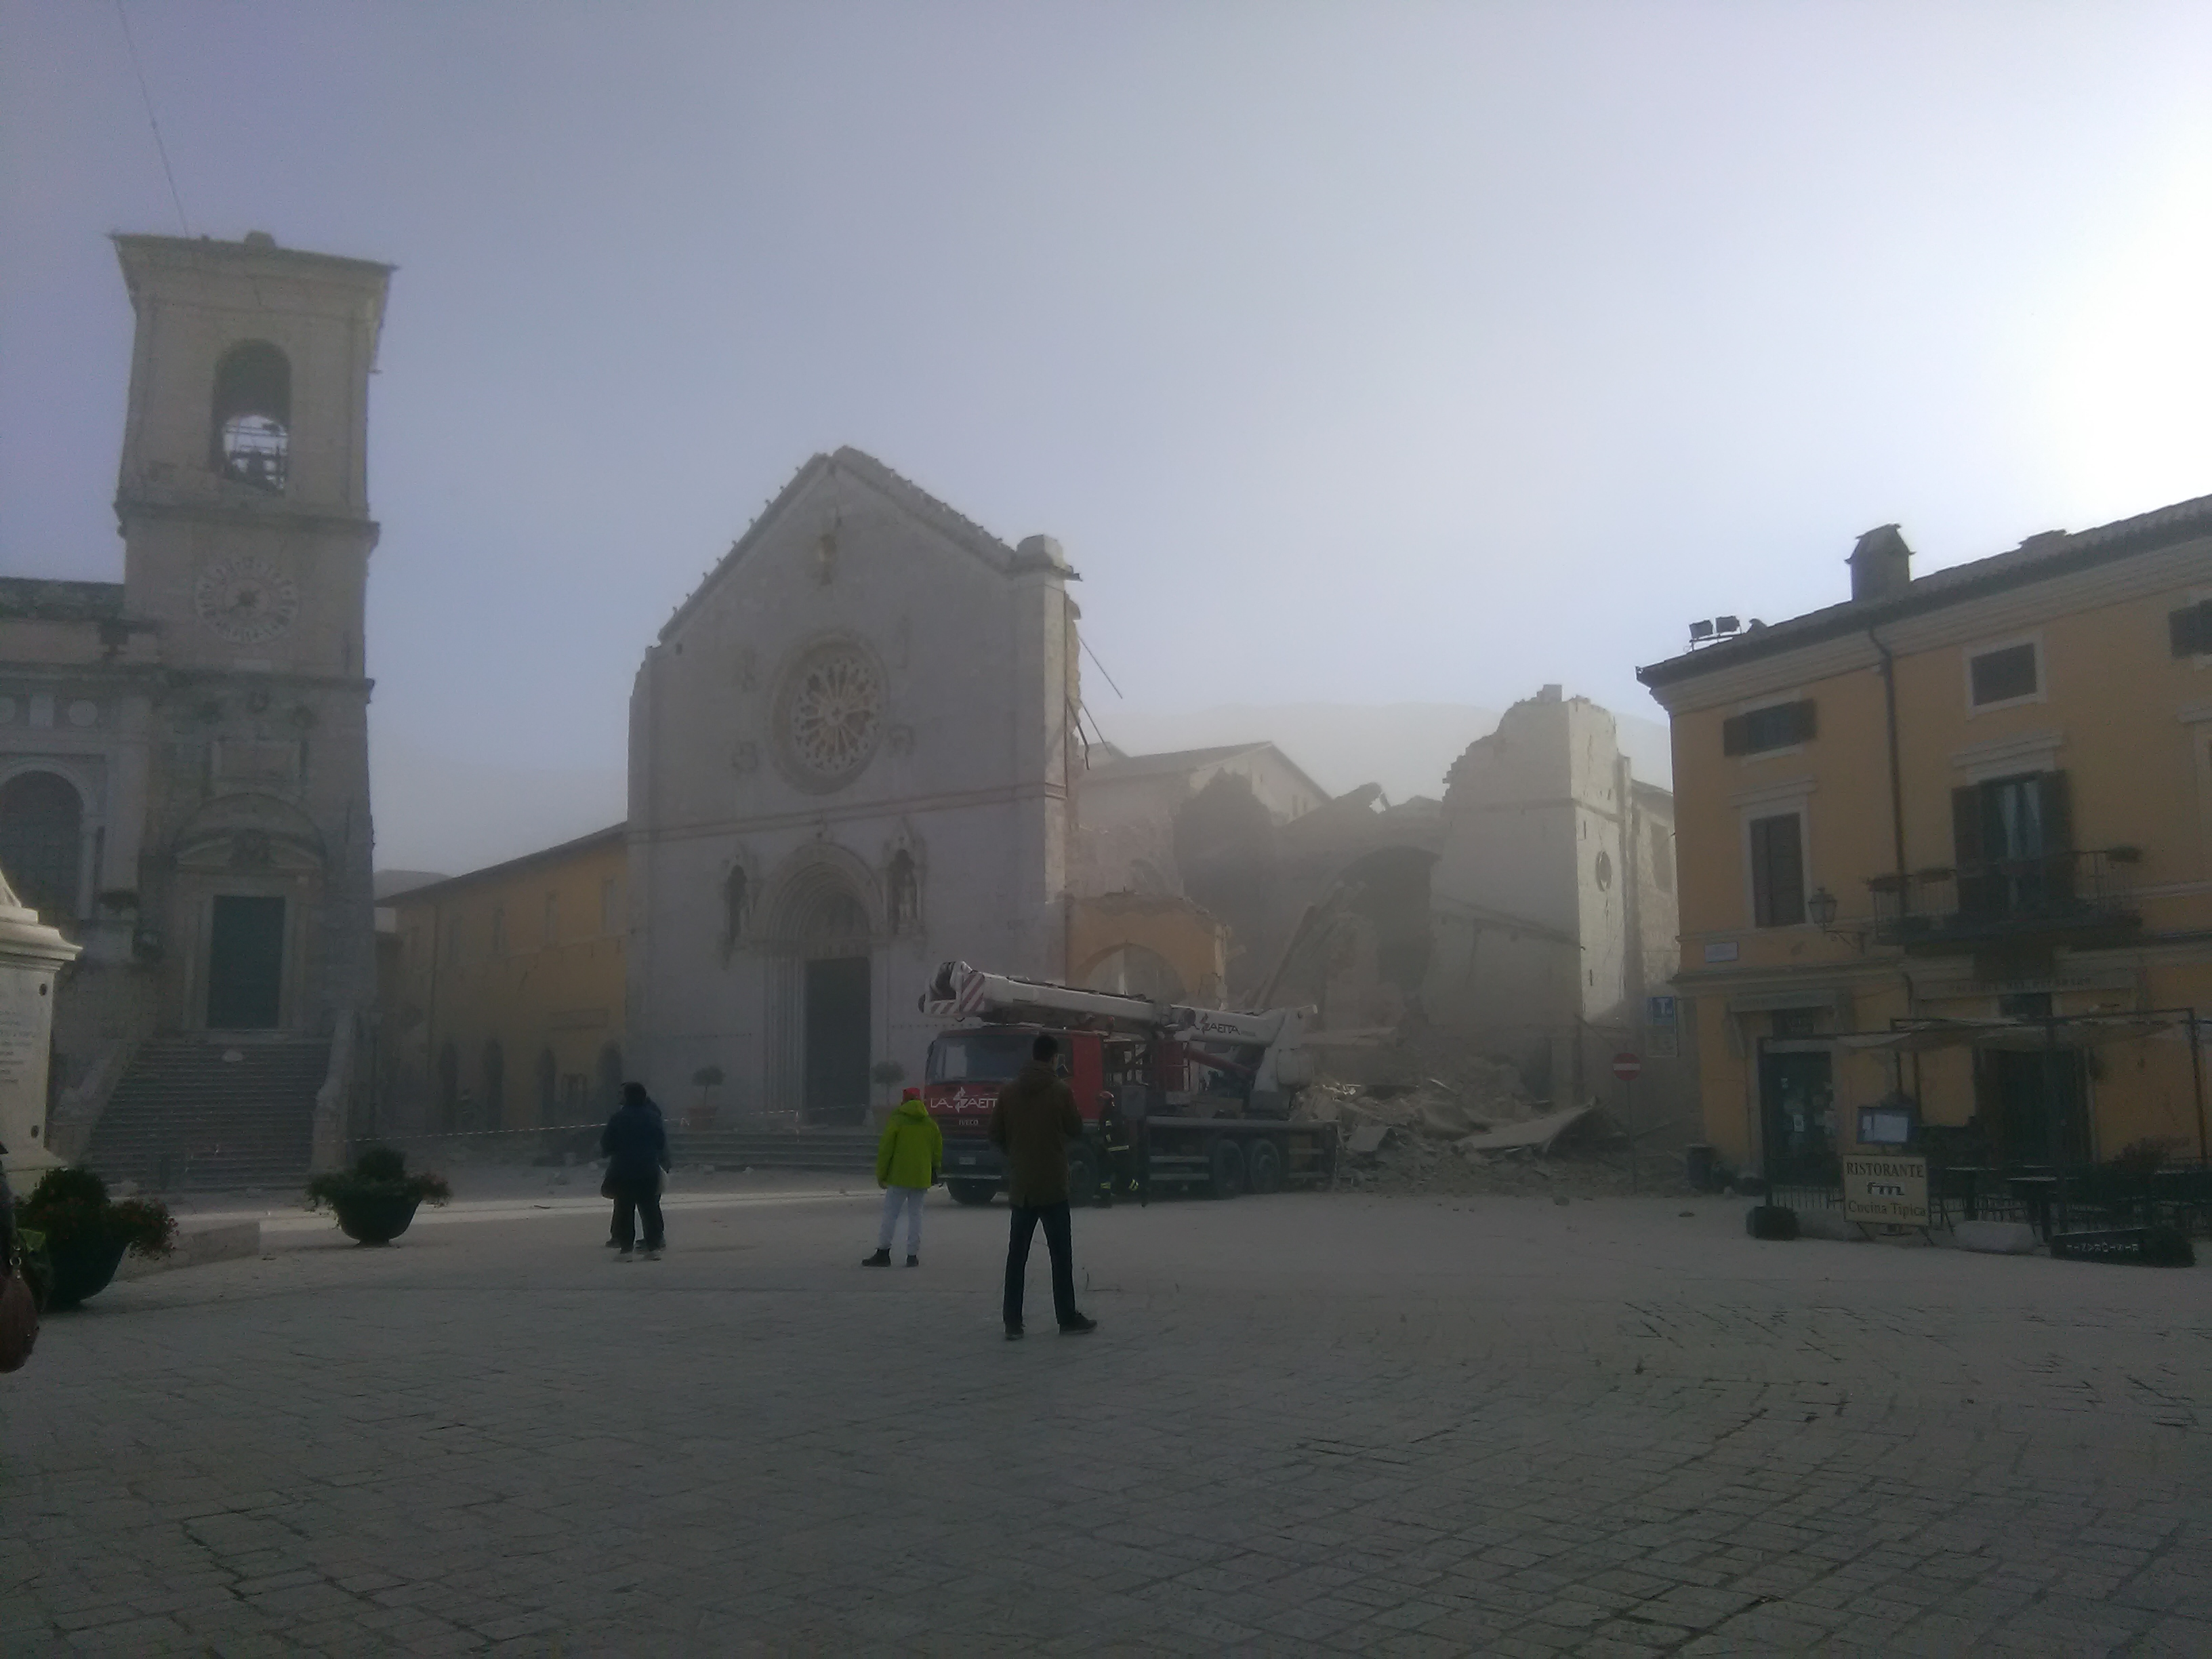 An earthquake destroys the Basilica of St. Benedict in Norcia, October 20, 2016.